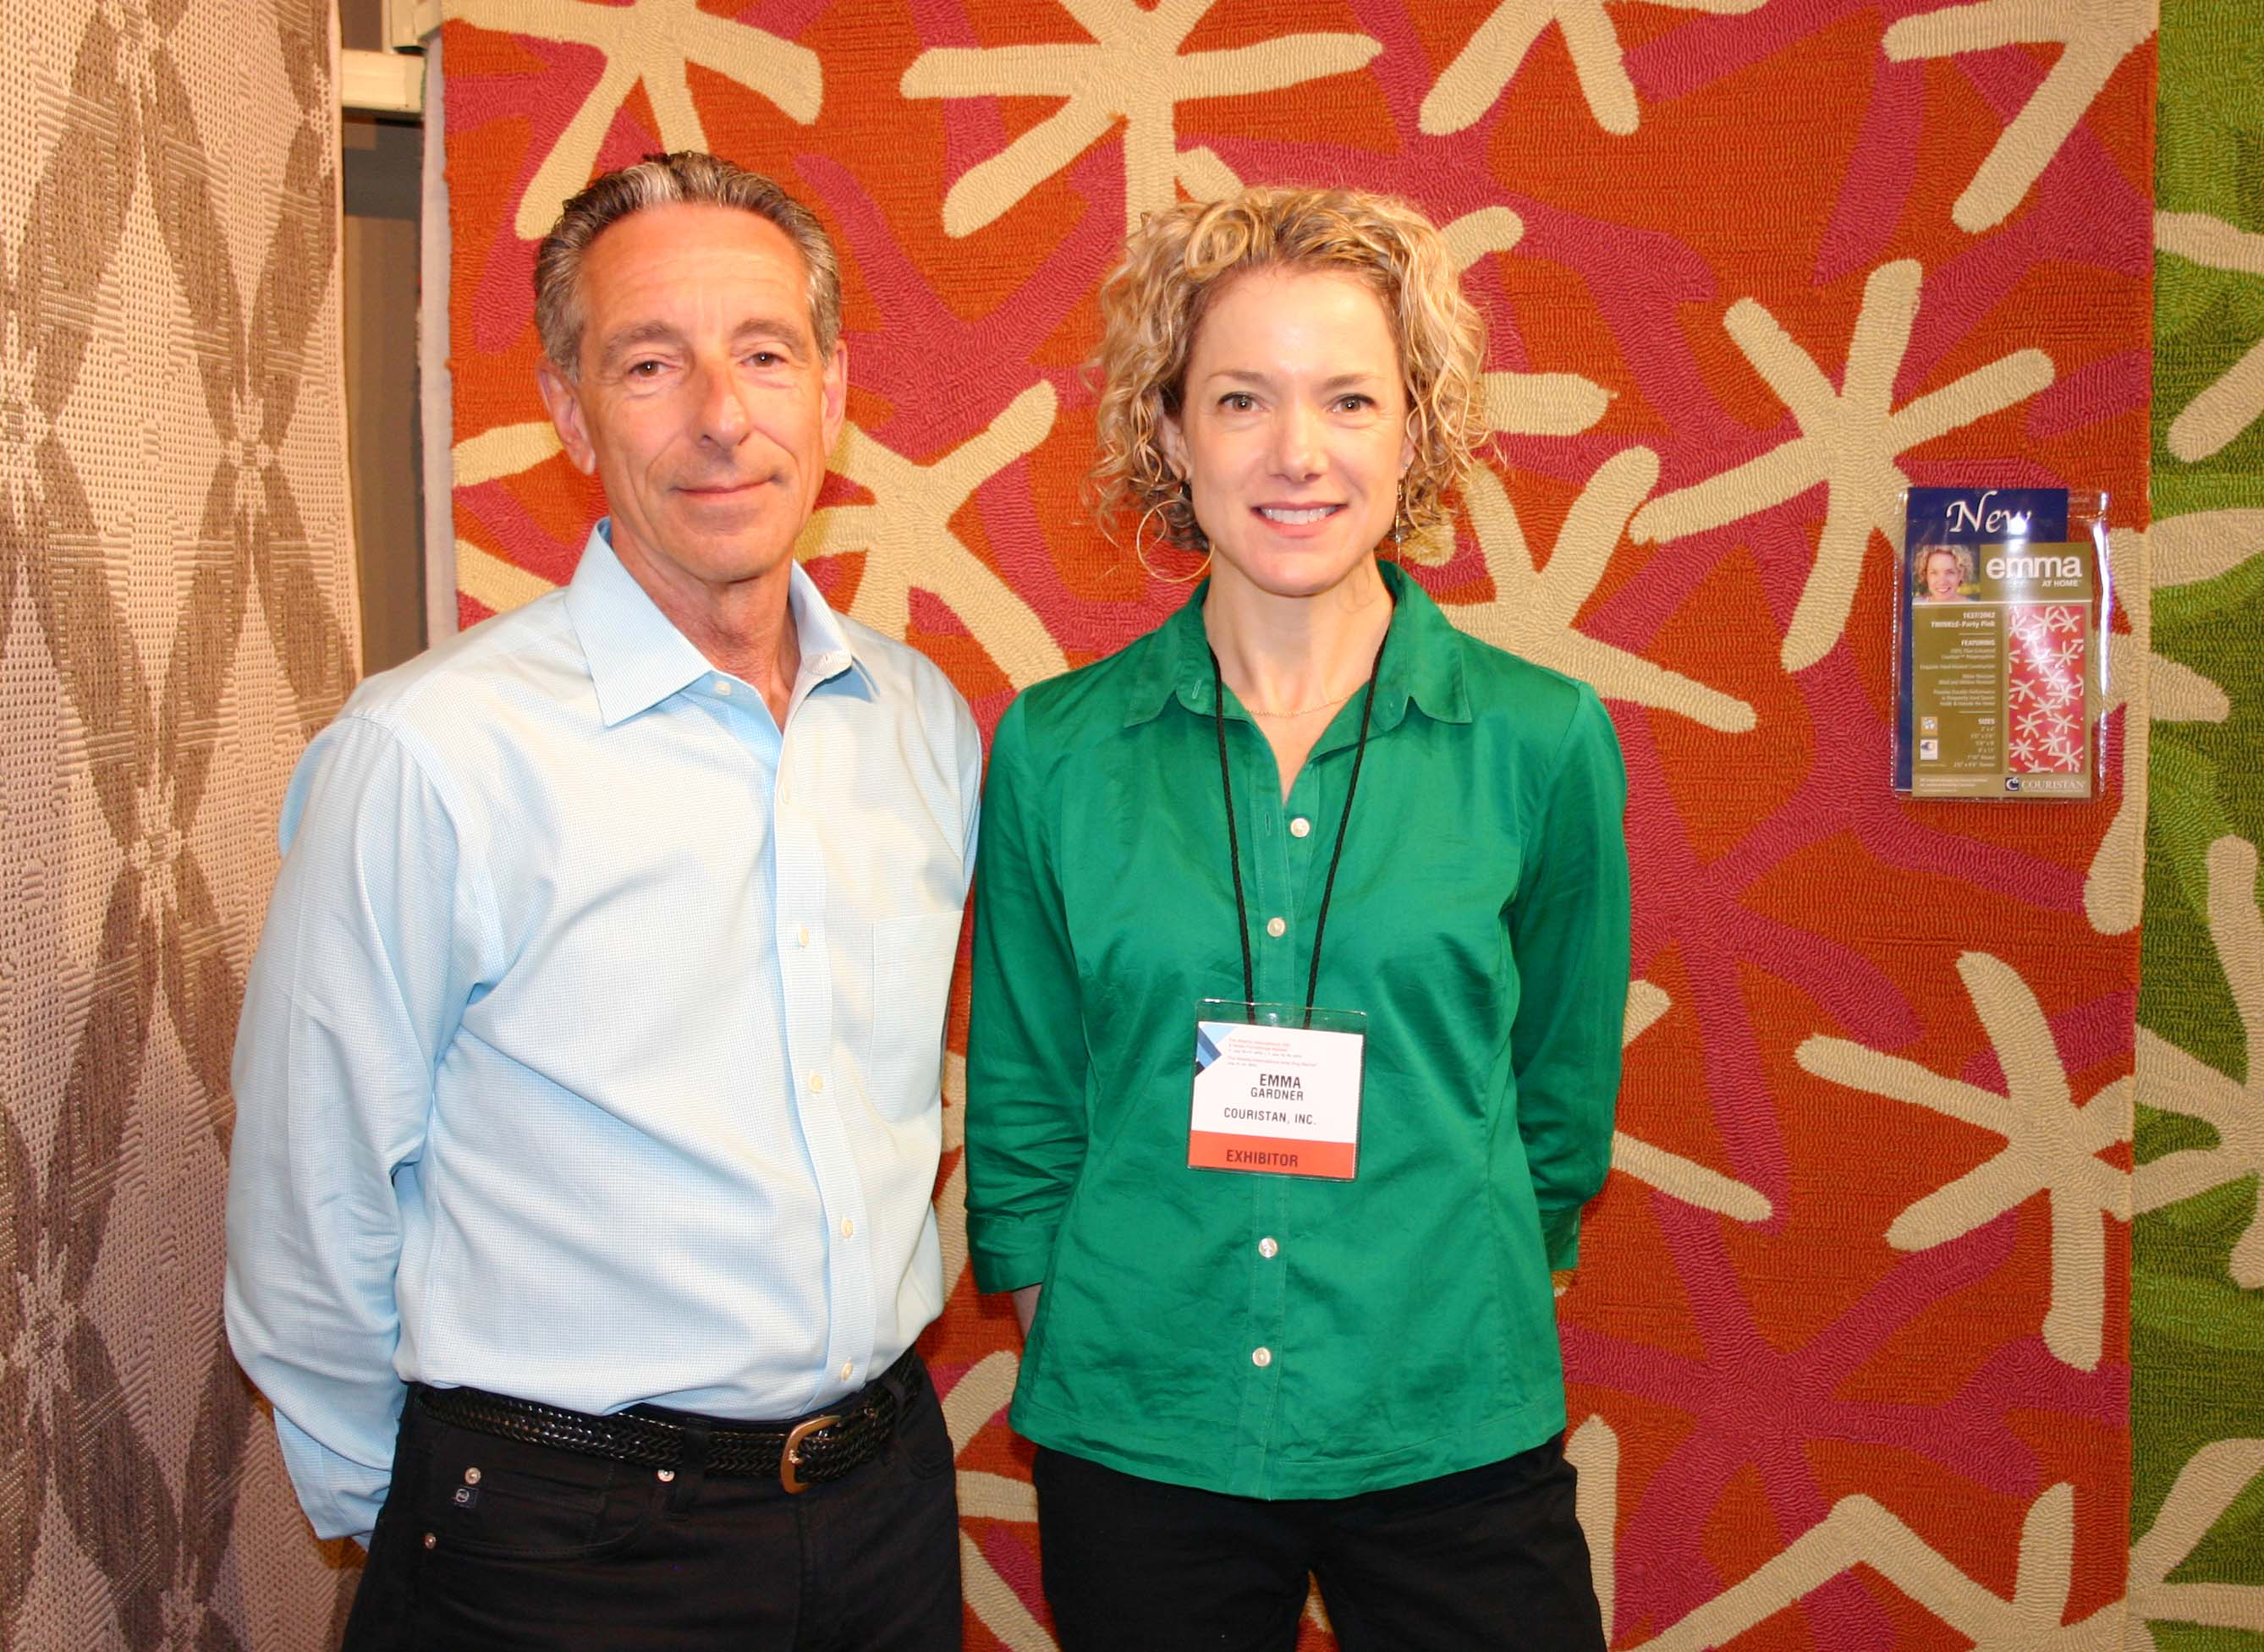 Steve Codella, Couristan executive vice president of sales (left) stands with Emma Gardner in front of Twinkle Party Pink, a hand-hooked, indoor/outdoor rug from Couristan's Emma at Home collection.